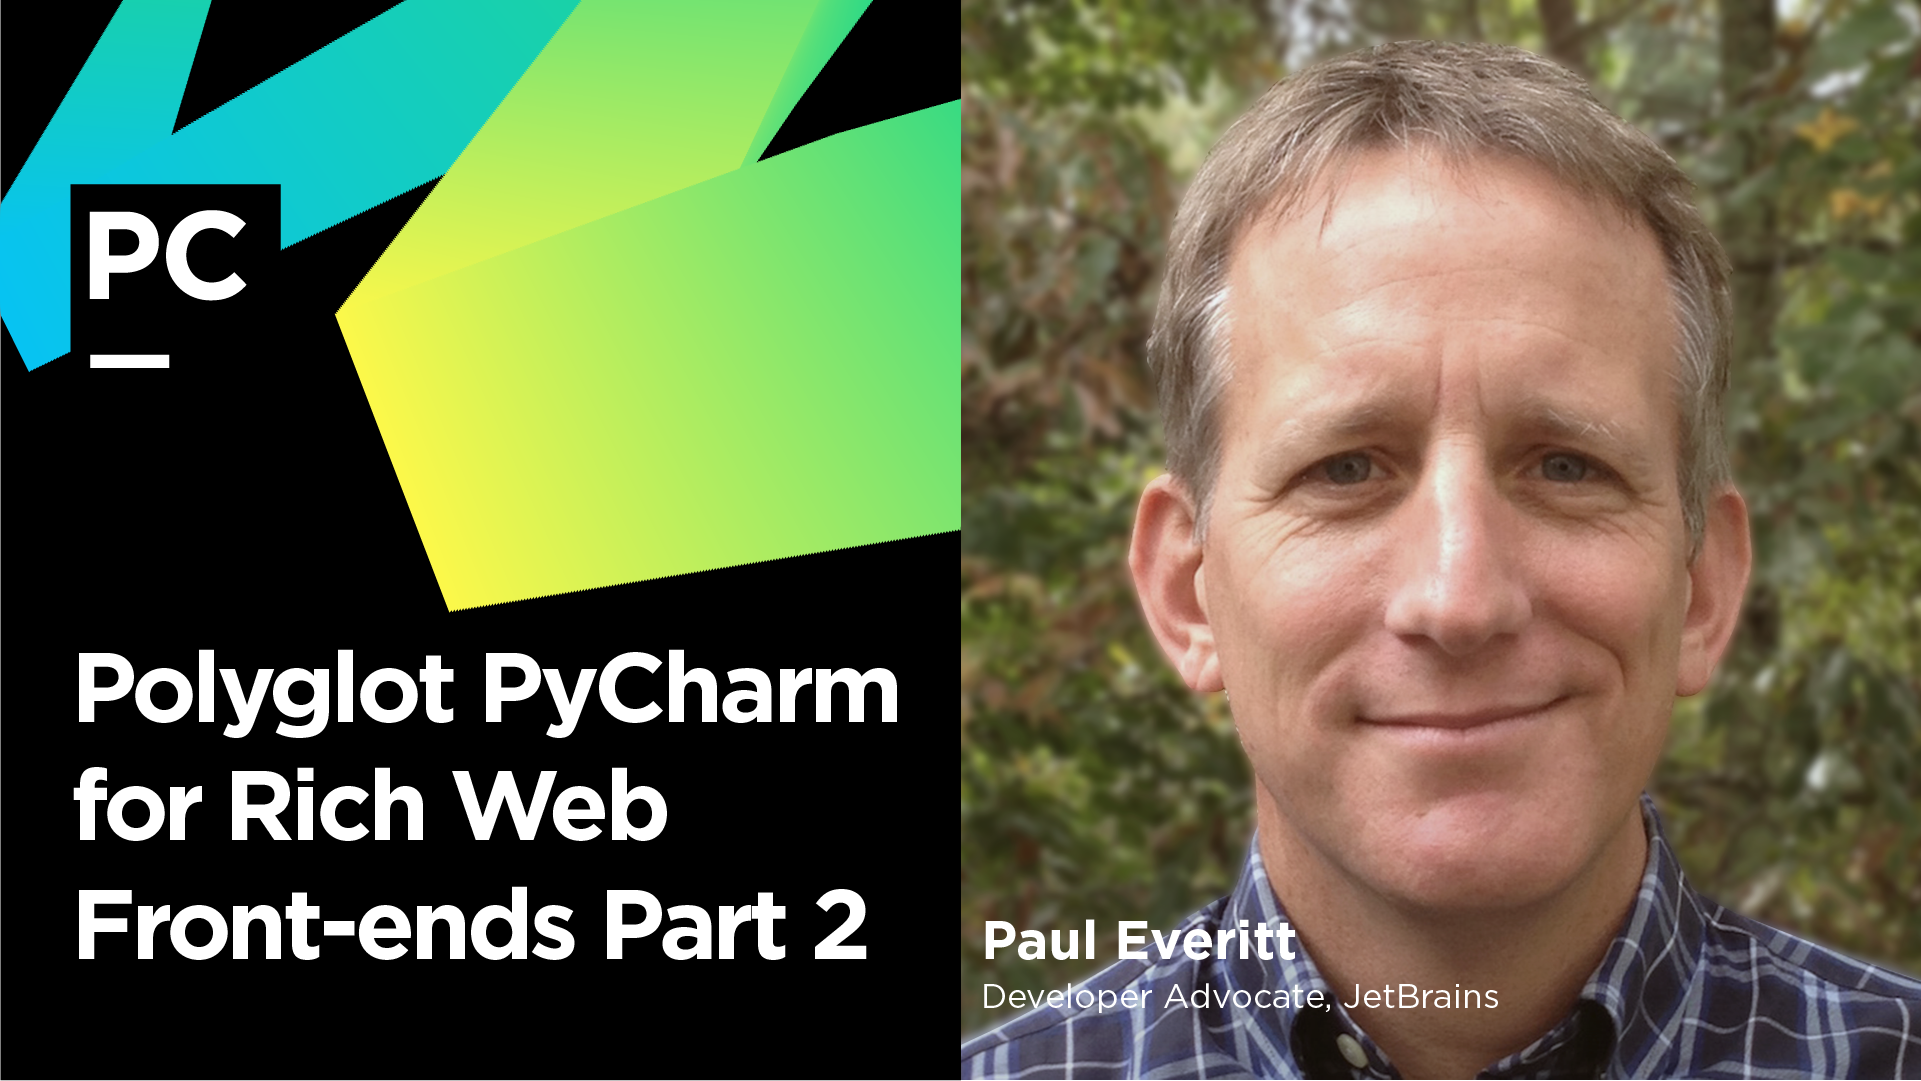 pycharm_webinar_Polyglot_PyCharm_for_Rich_Web_Front-ends_part_2